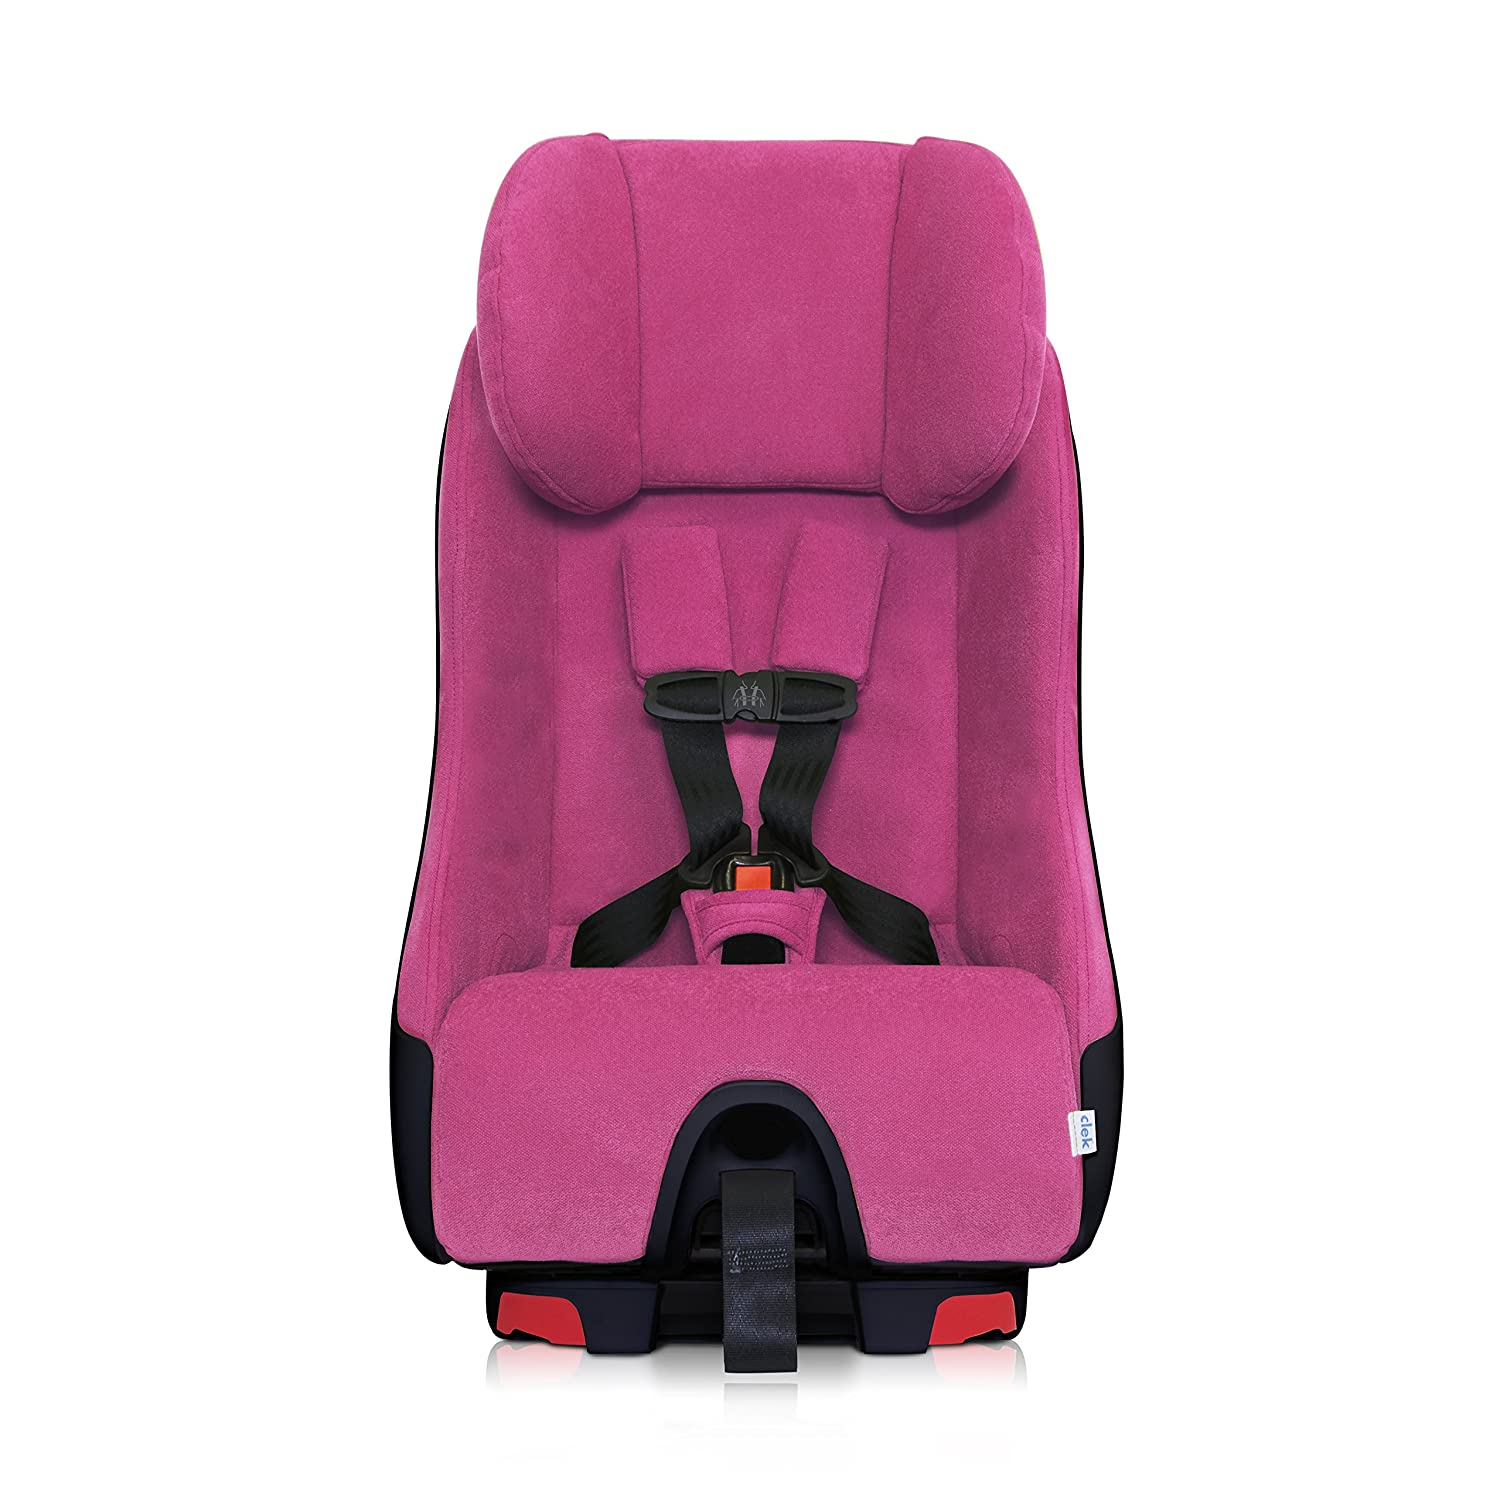 Flamingo 2018 Clek Foonf Rigid Latch Convertible Baby and Toddler Car Seat Rear and Forward Facing with Anti Rebound Bar